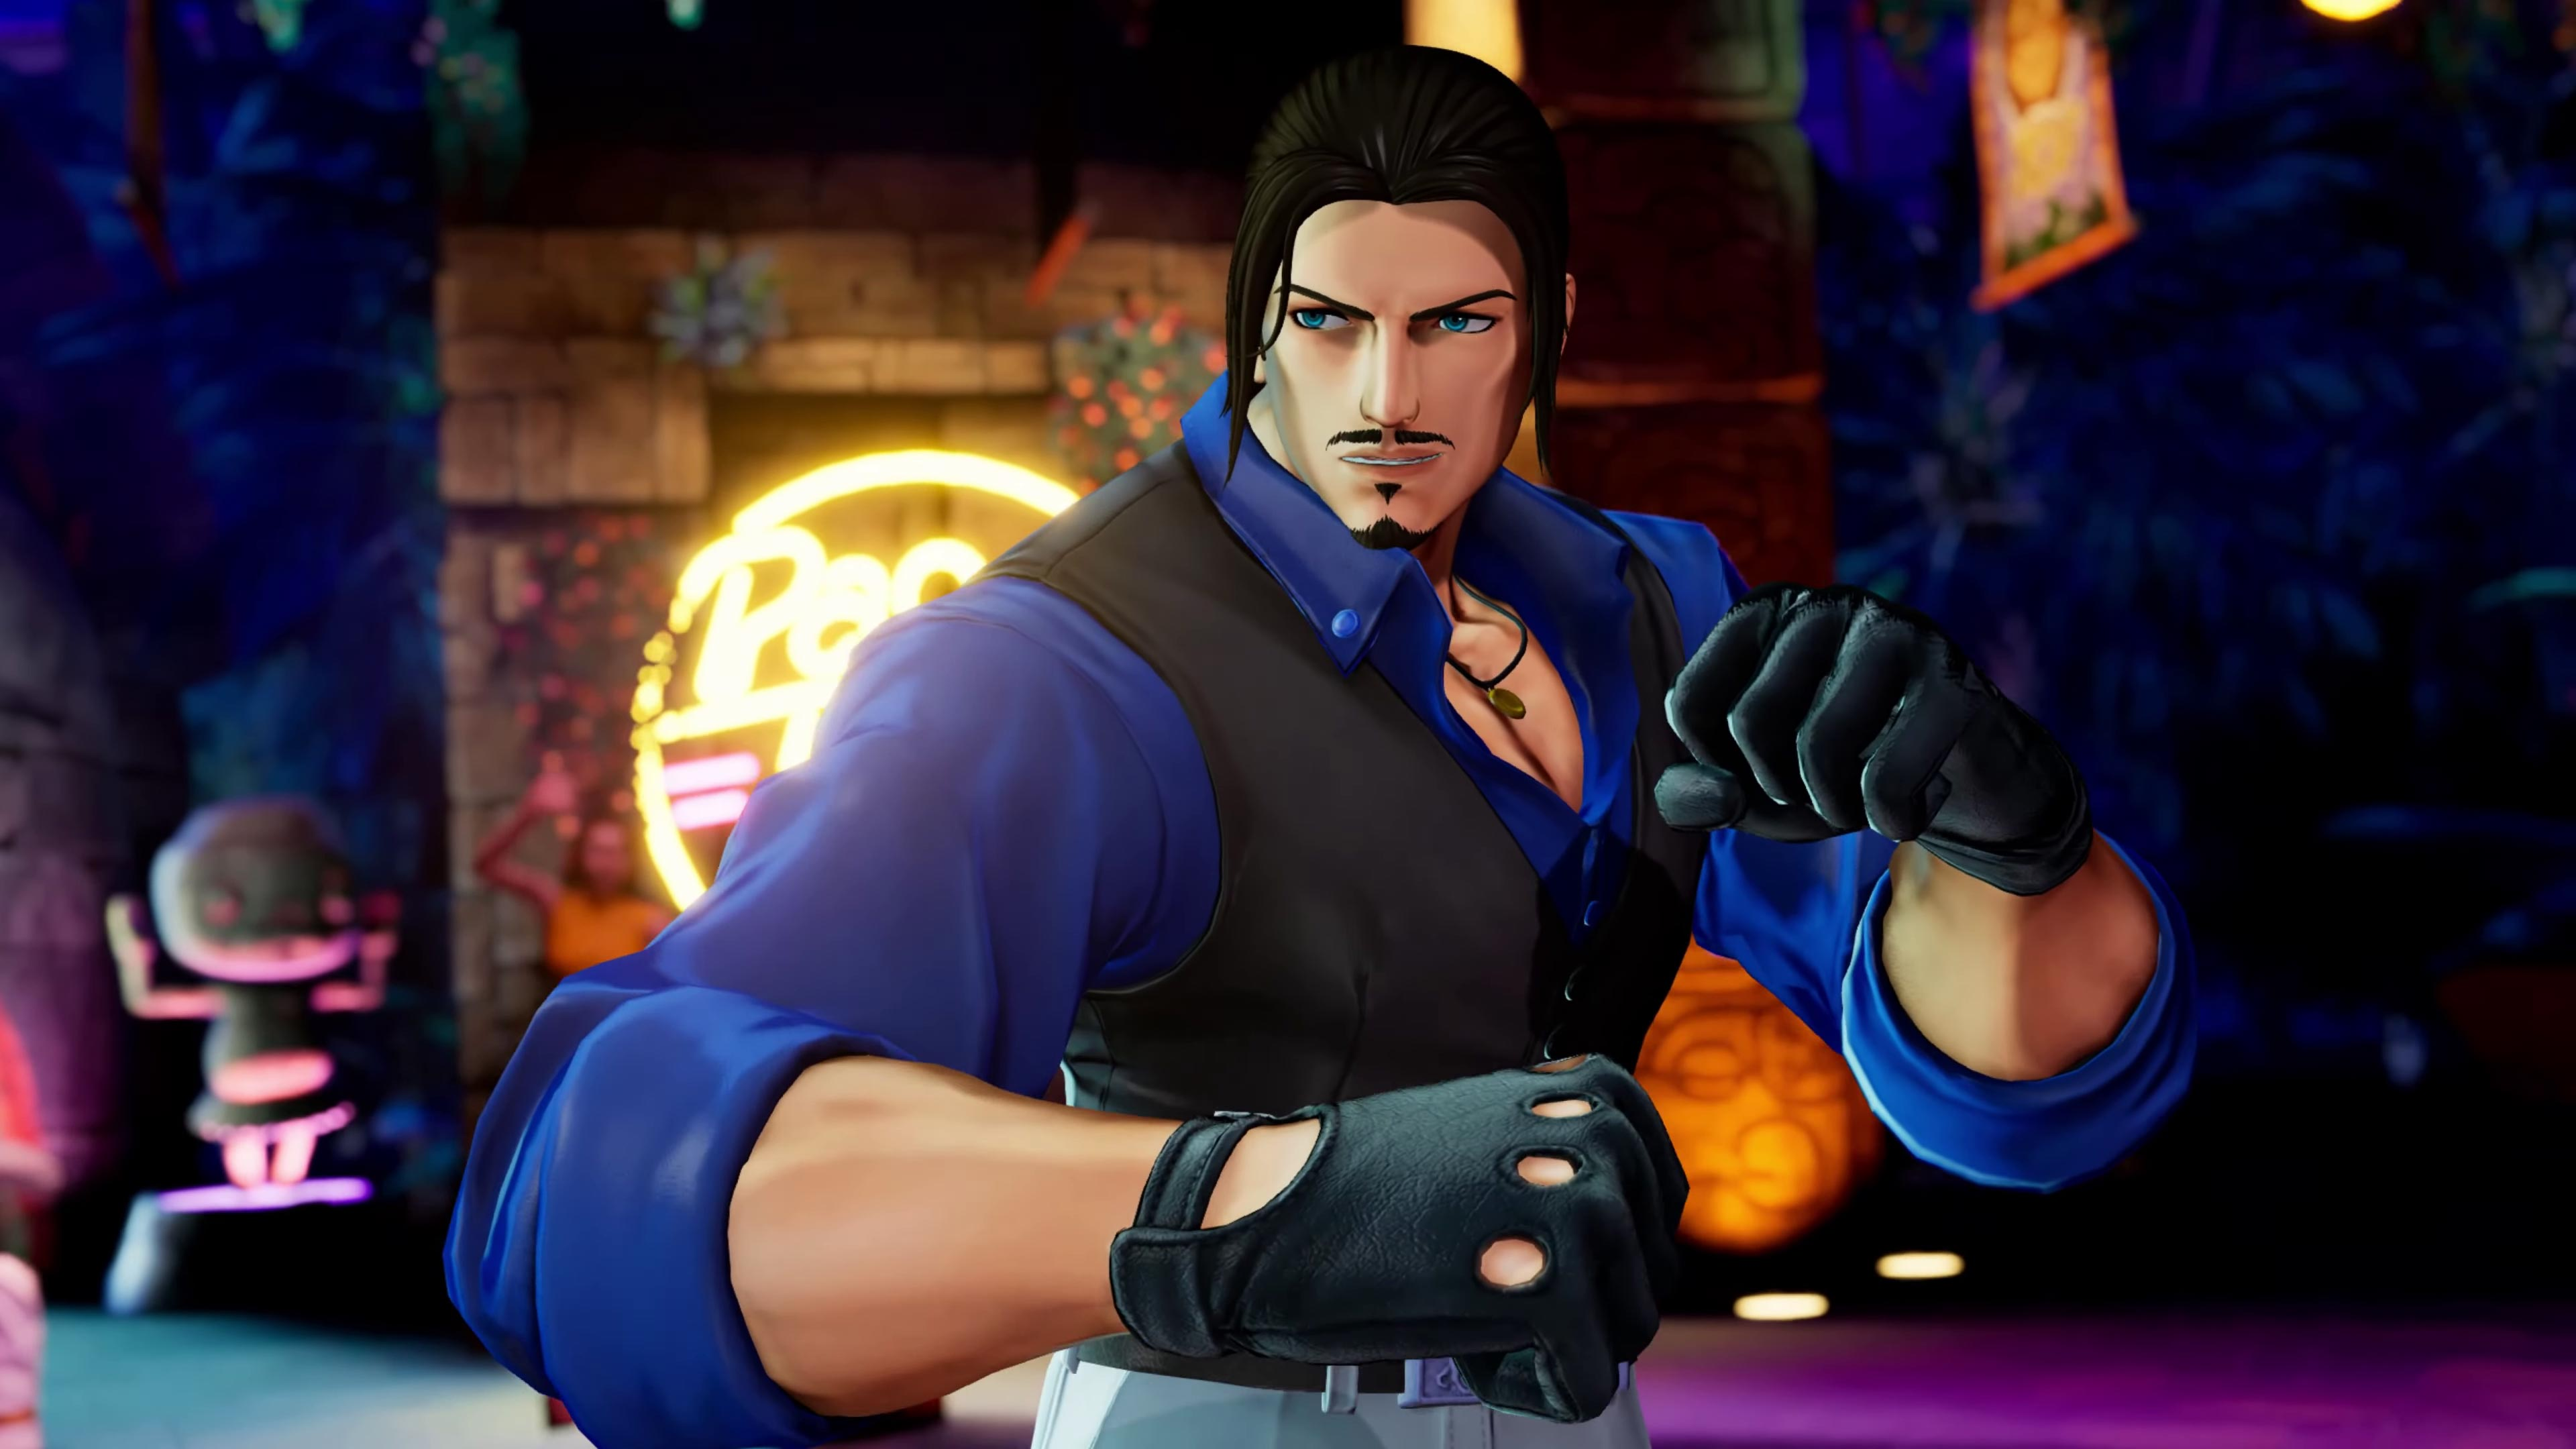 Robert and Ryo KOF15 reveal 2 out of 9 image gallery